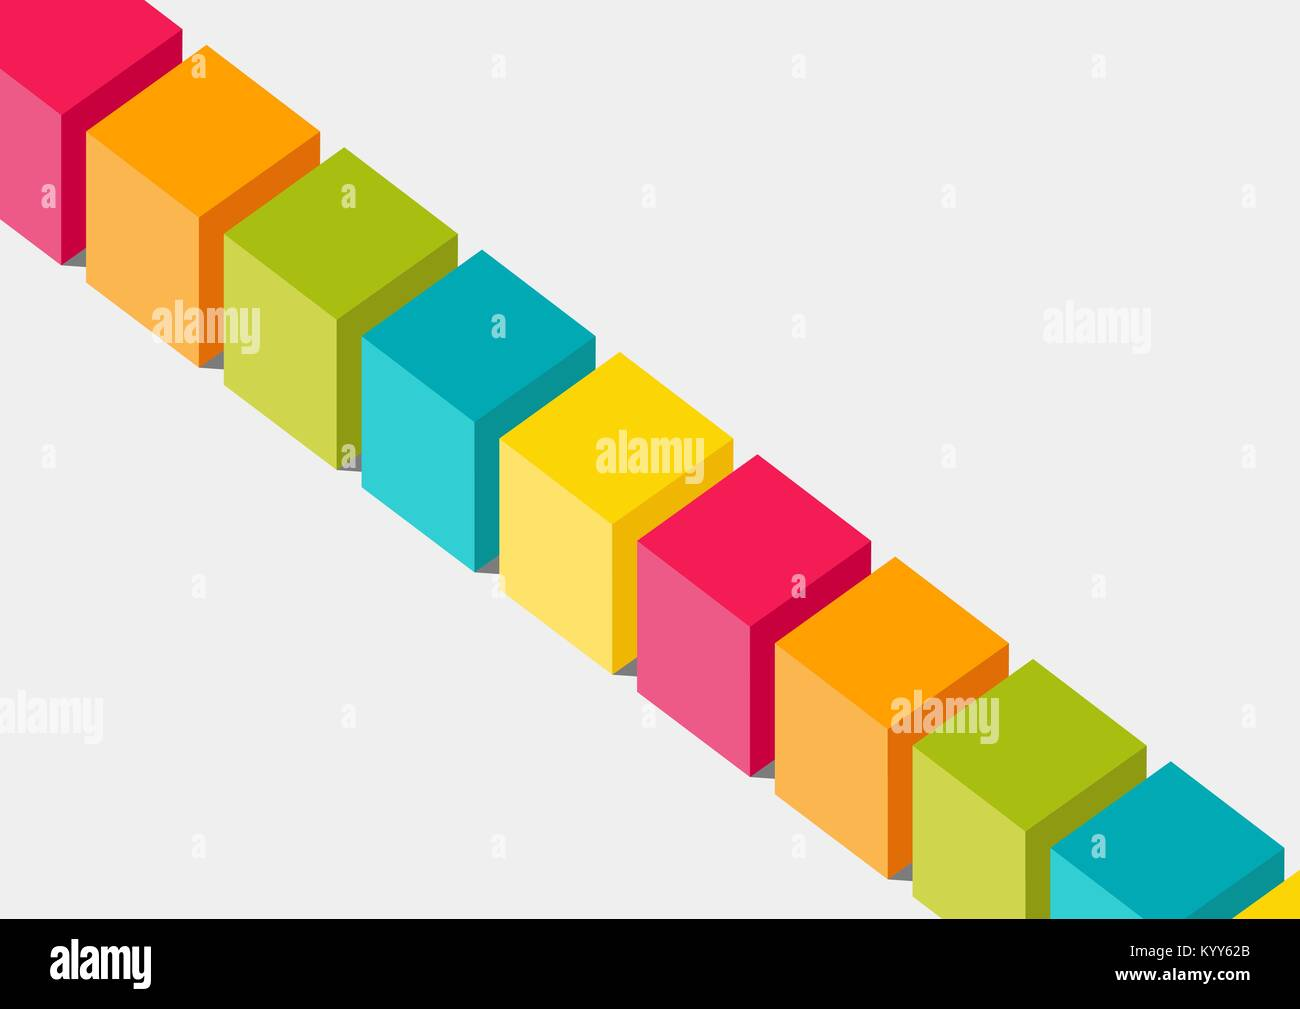 Flat design vector illustration of 3-dimensional colorful boxes or blocks. Concept for blockchain or diversity - Stock Image